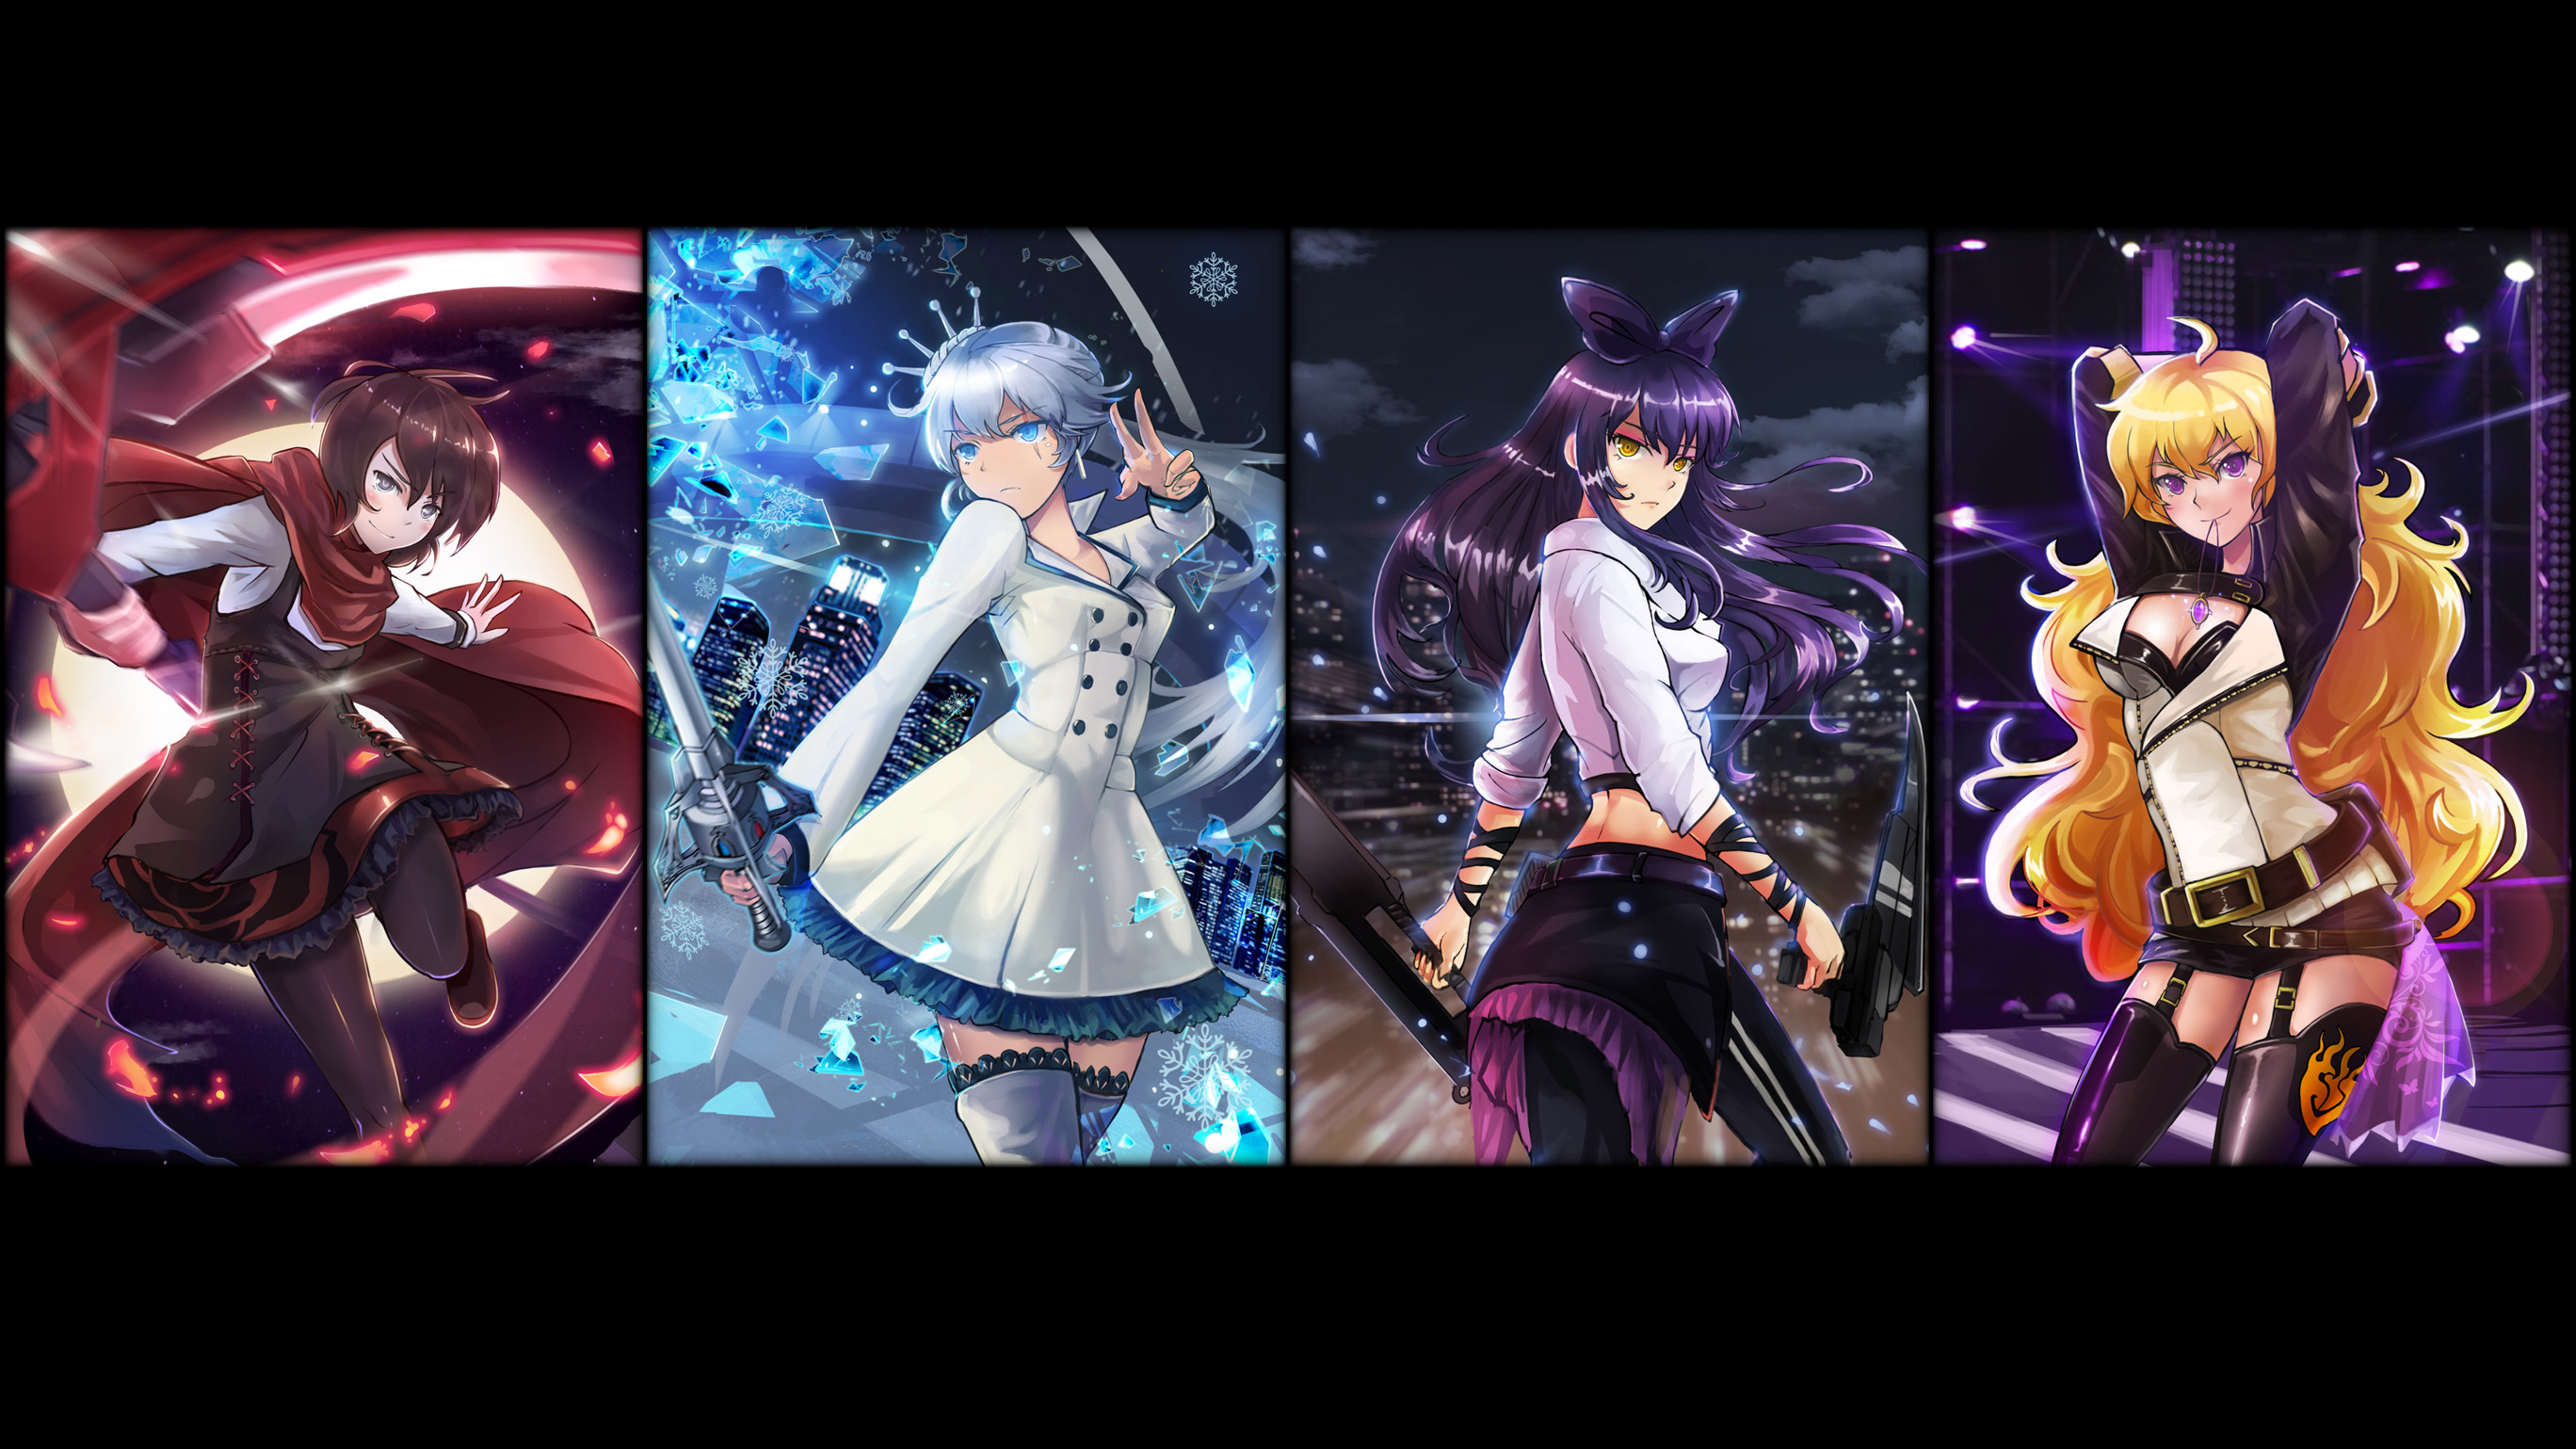 Res: 2736x1539, HD Wallpaper | Background Image ID:591599.  Anime RWBY